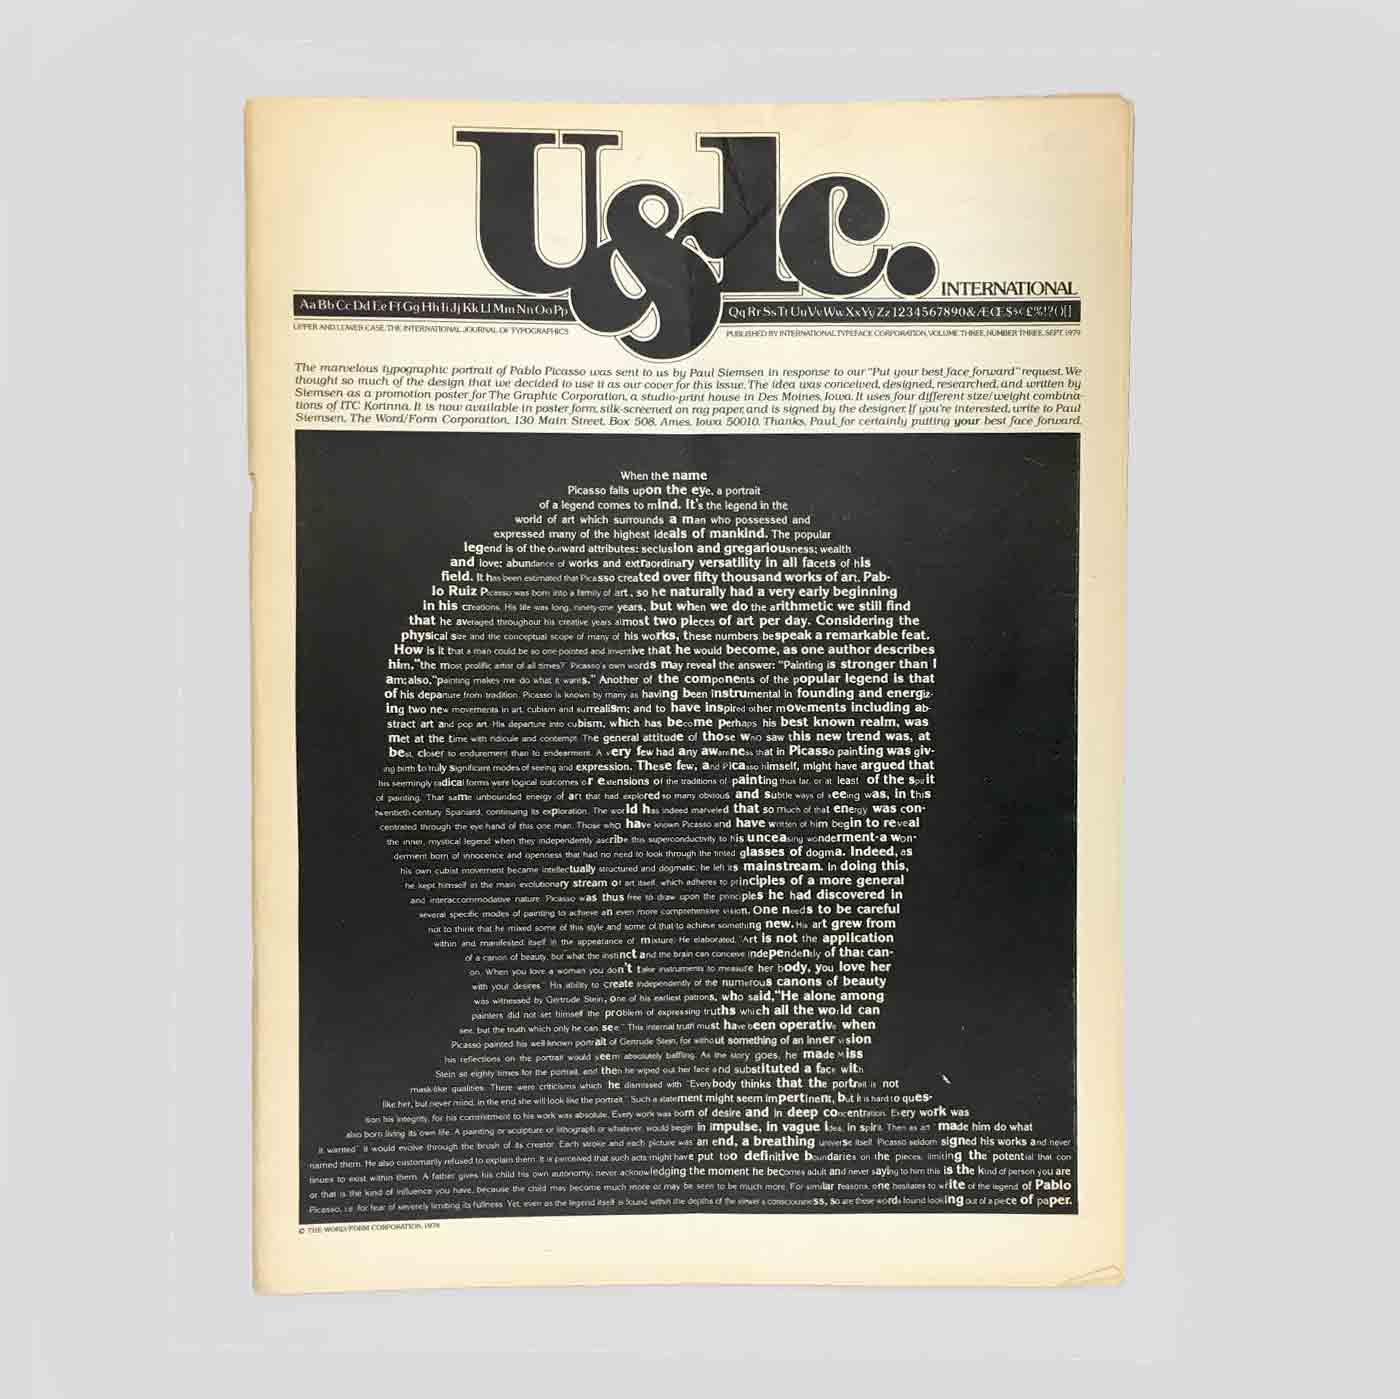 U&lc Vol. 3, No. 3, Sept 1979